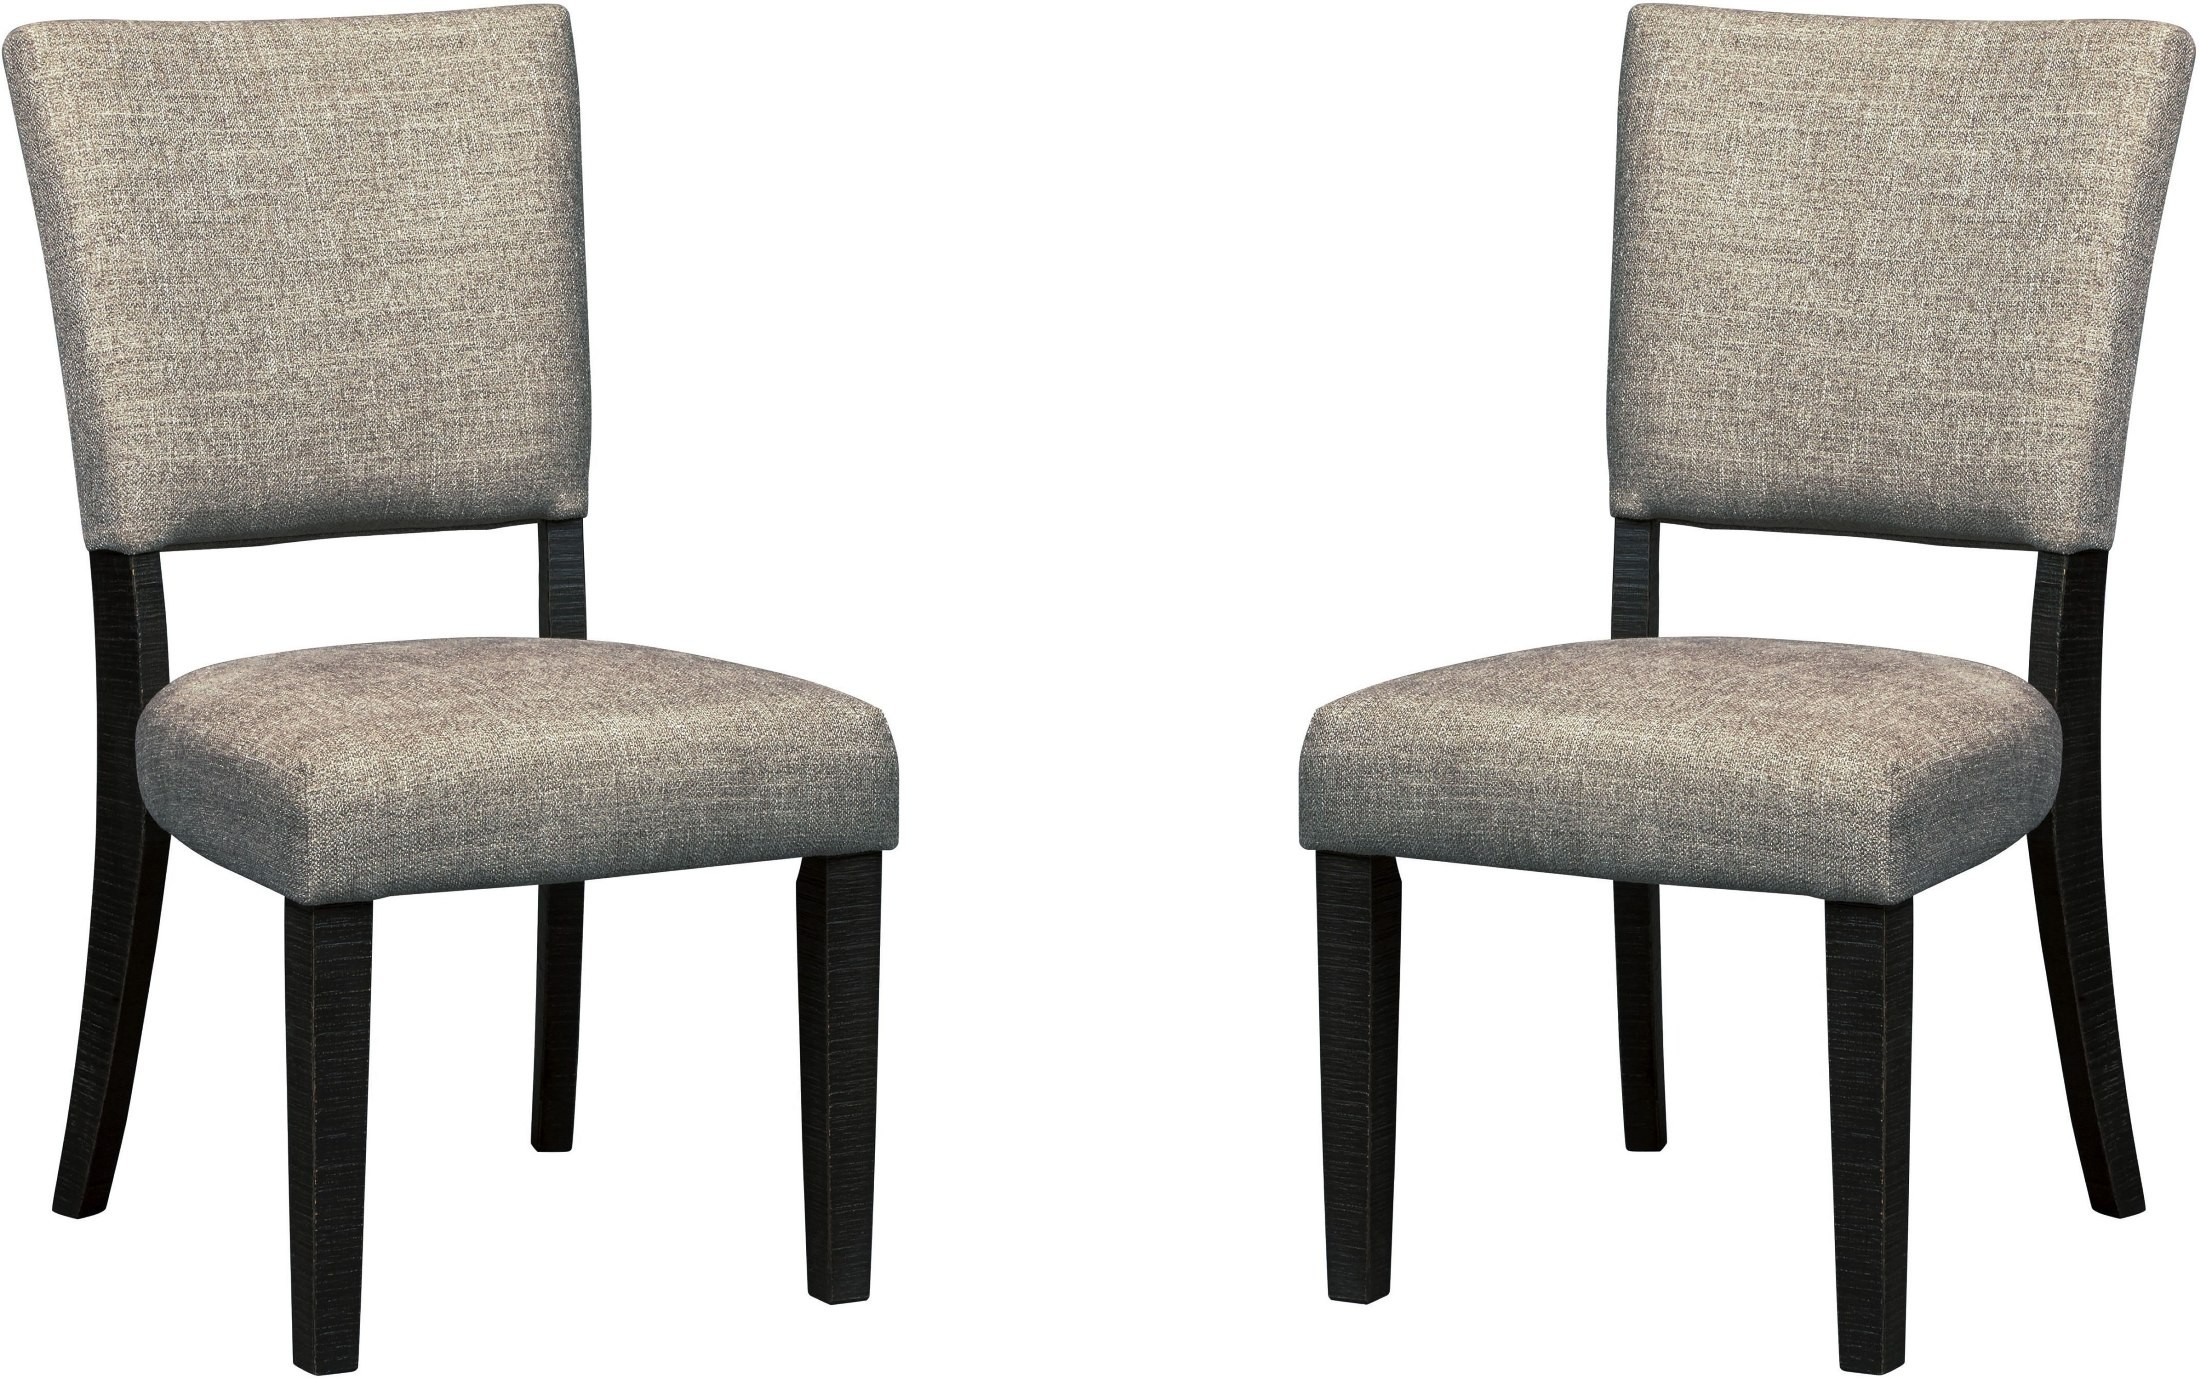 Zurani linen dining upholstered side chair set of 2 d709 for Dining chairs with upholstered seats